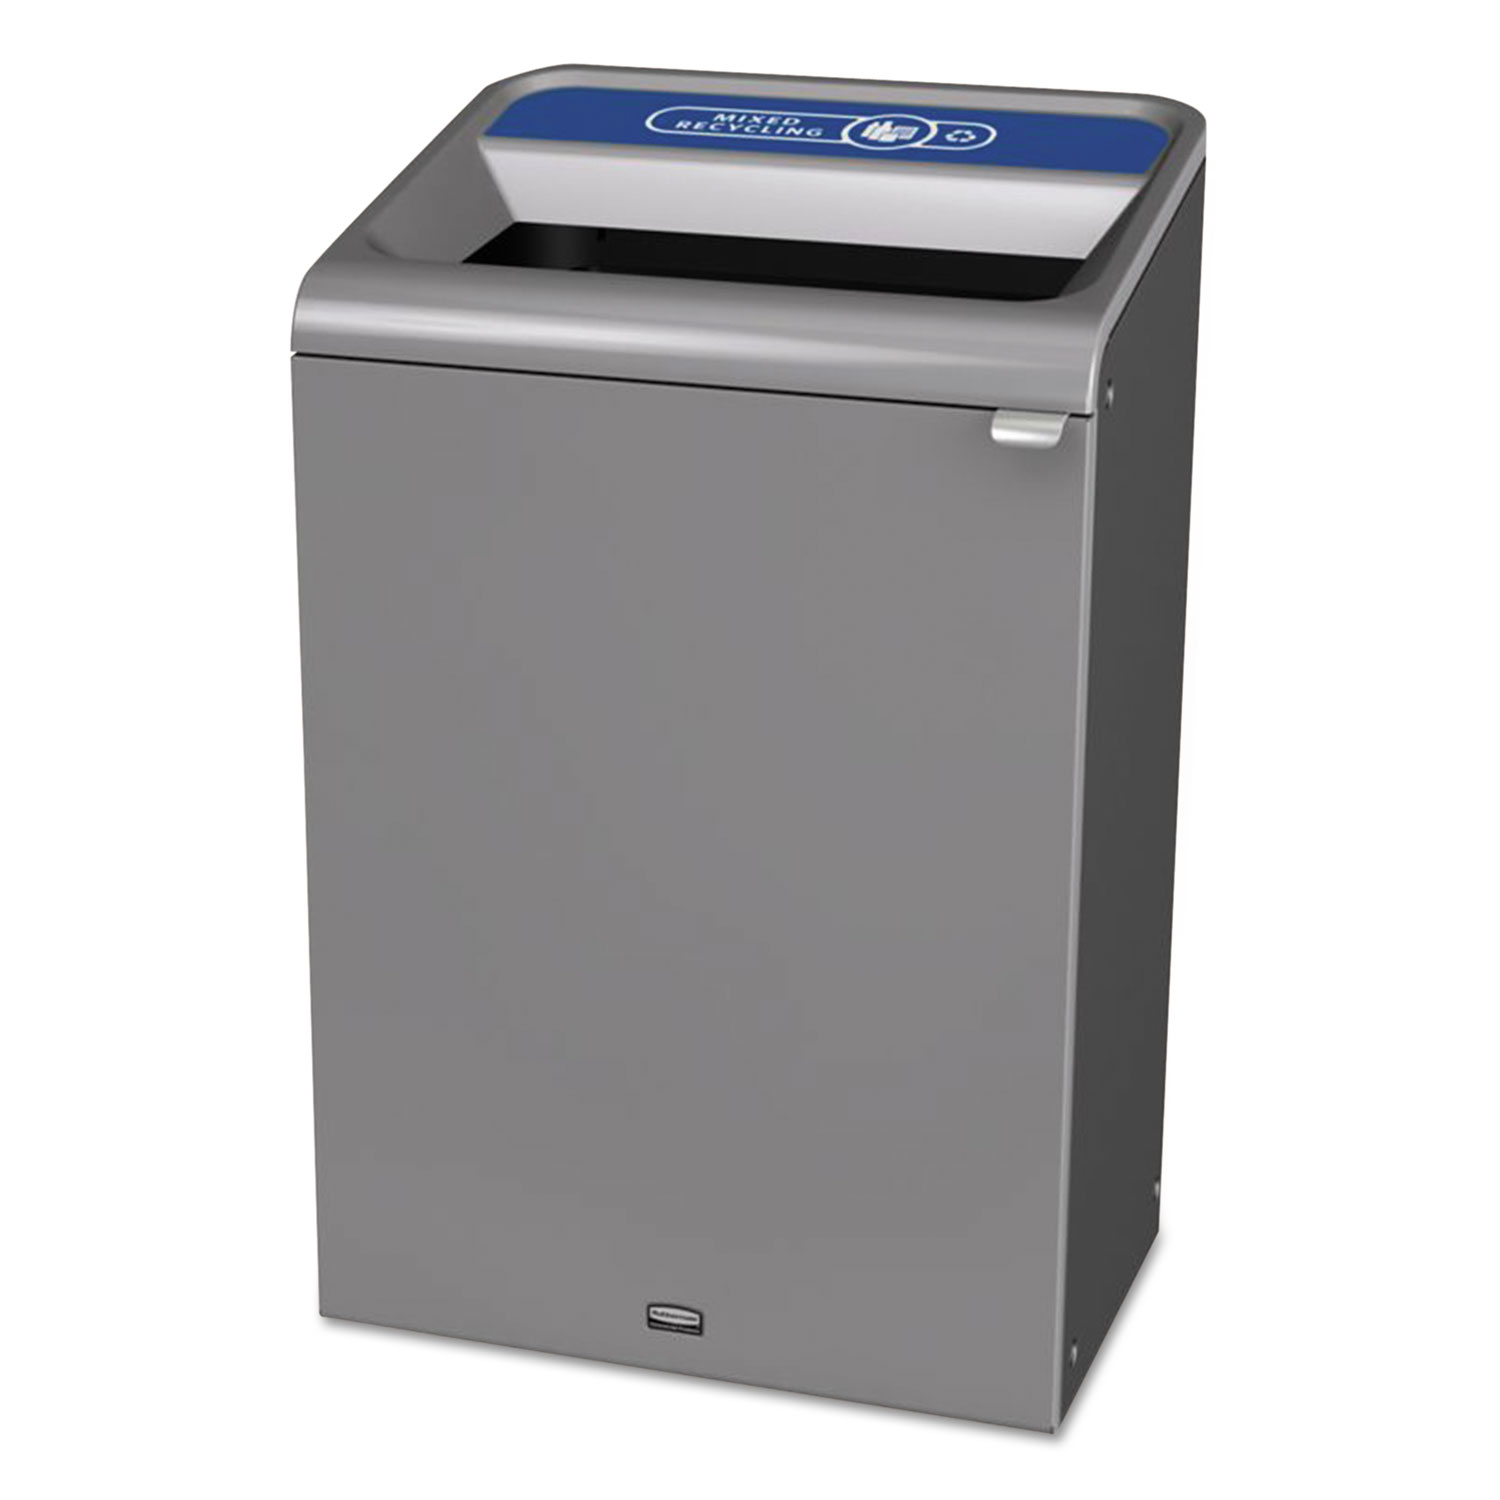 Configure Indoor Recycling Waste Receptacle, 33 gal, Gray, Mixed Recycling